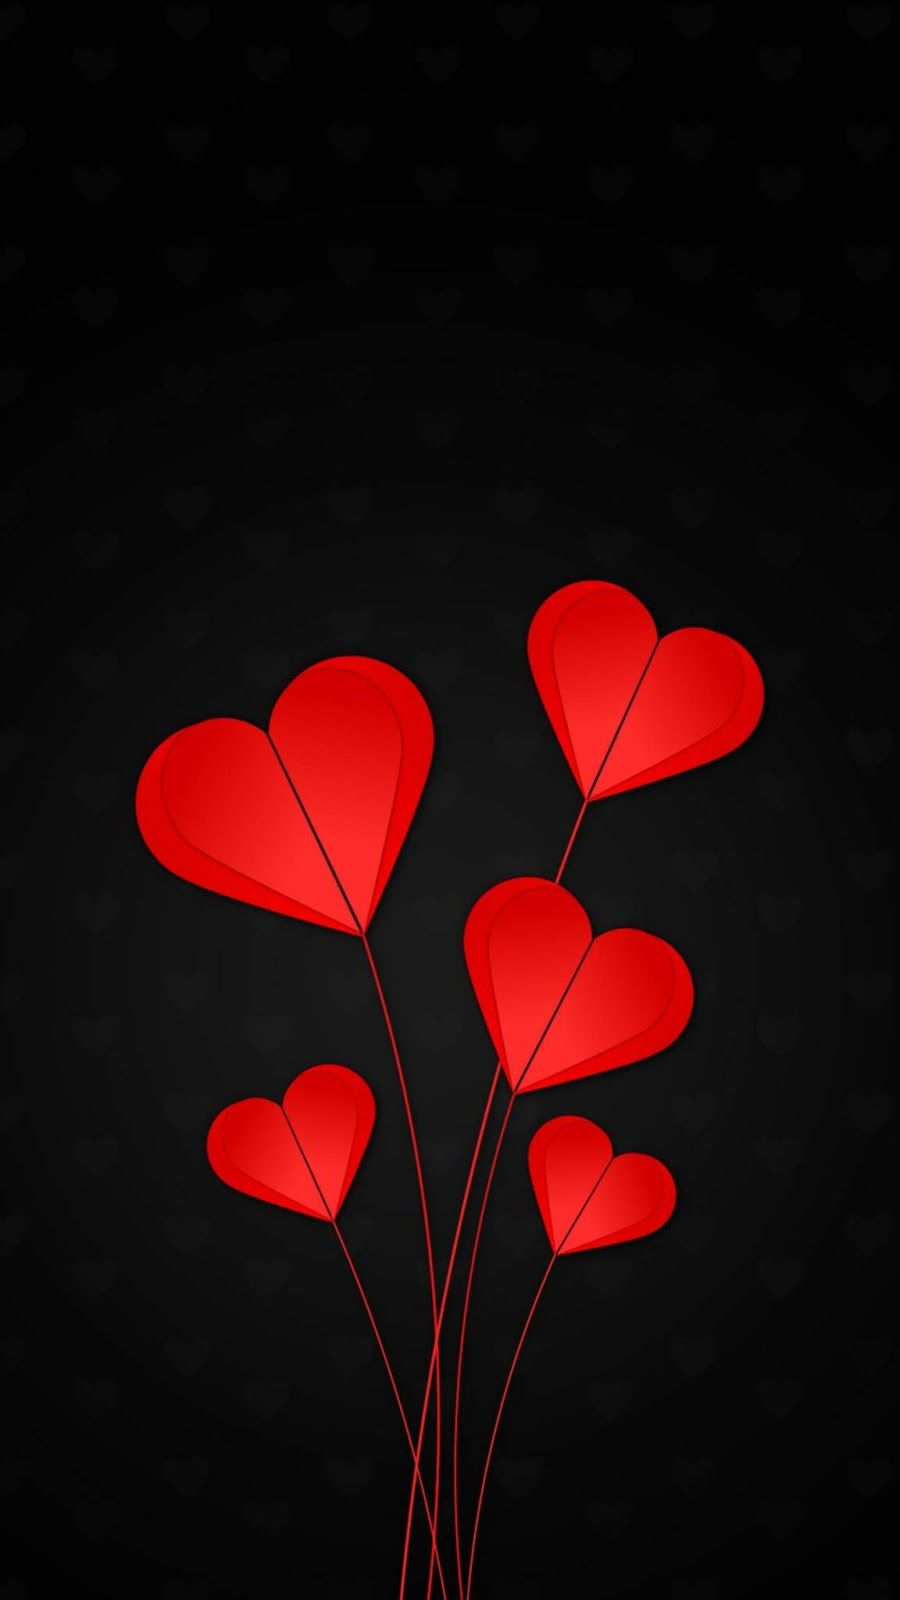 Hearts Red Black Background Heart Wallpaper Black Backgrounds Black Background Wallpaper